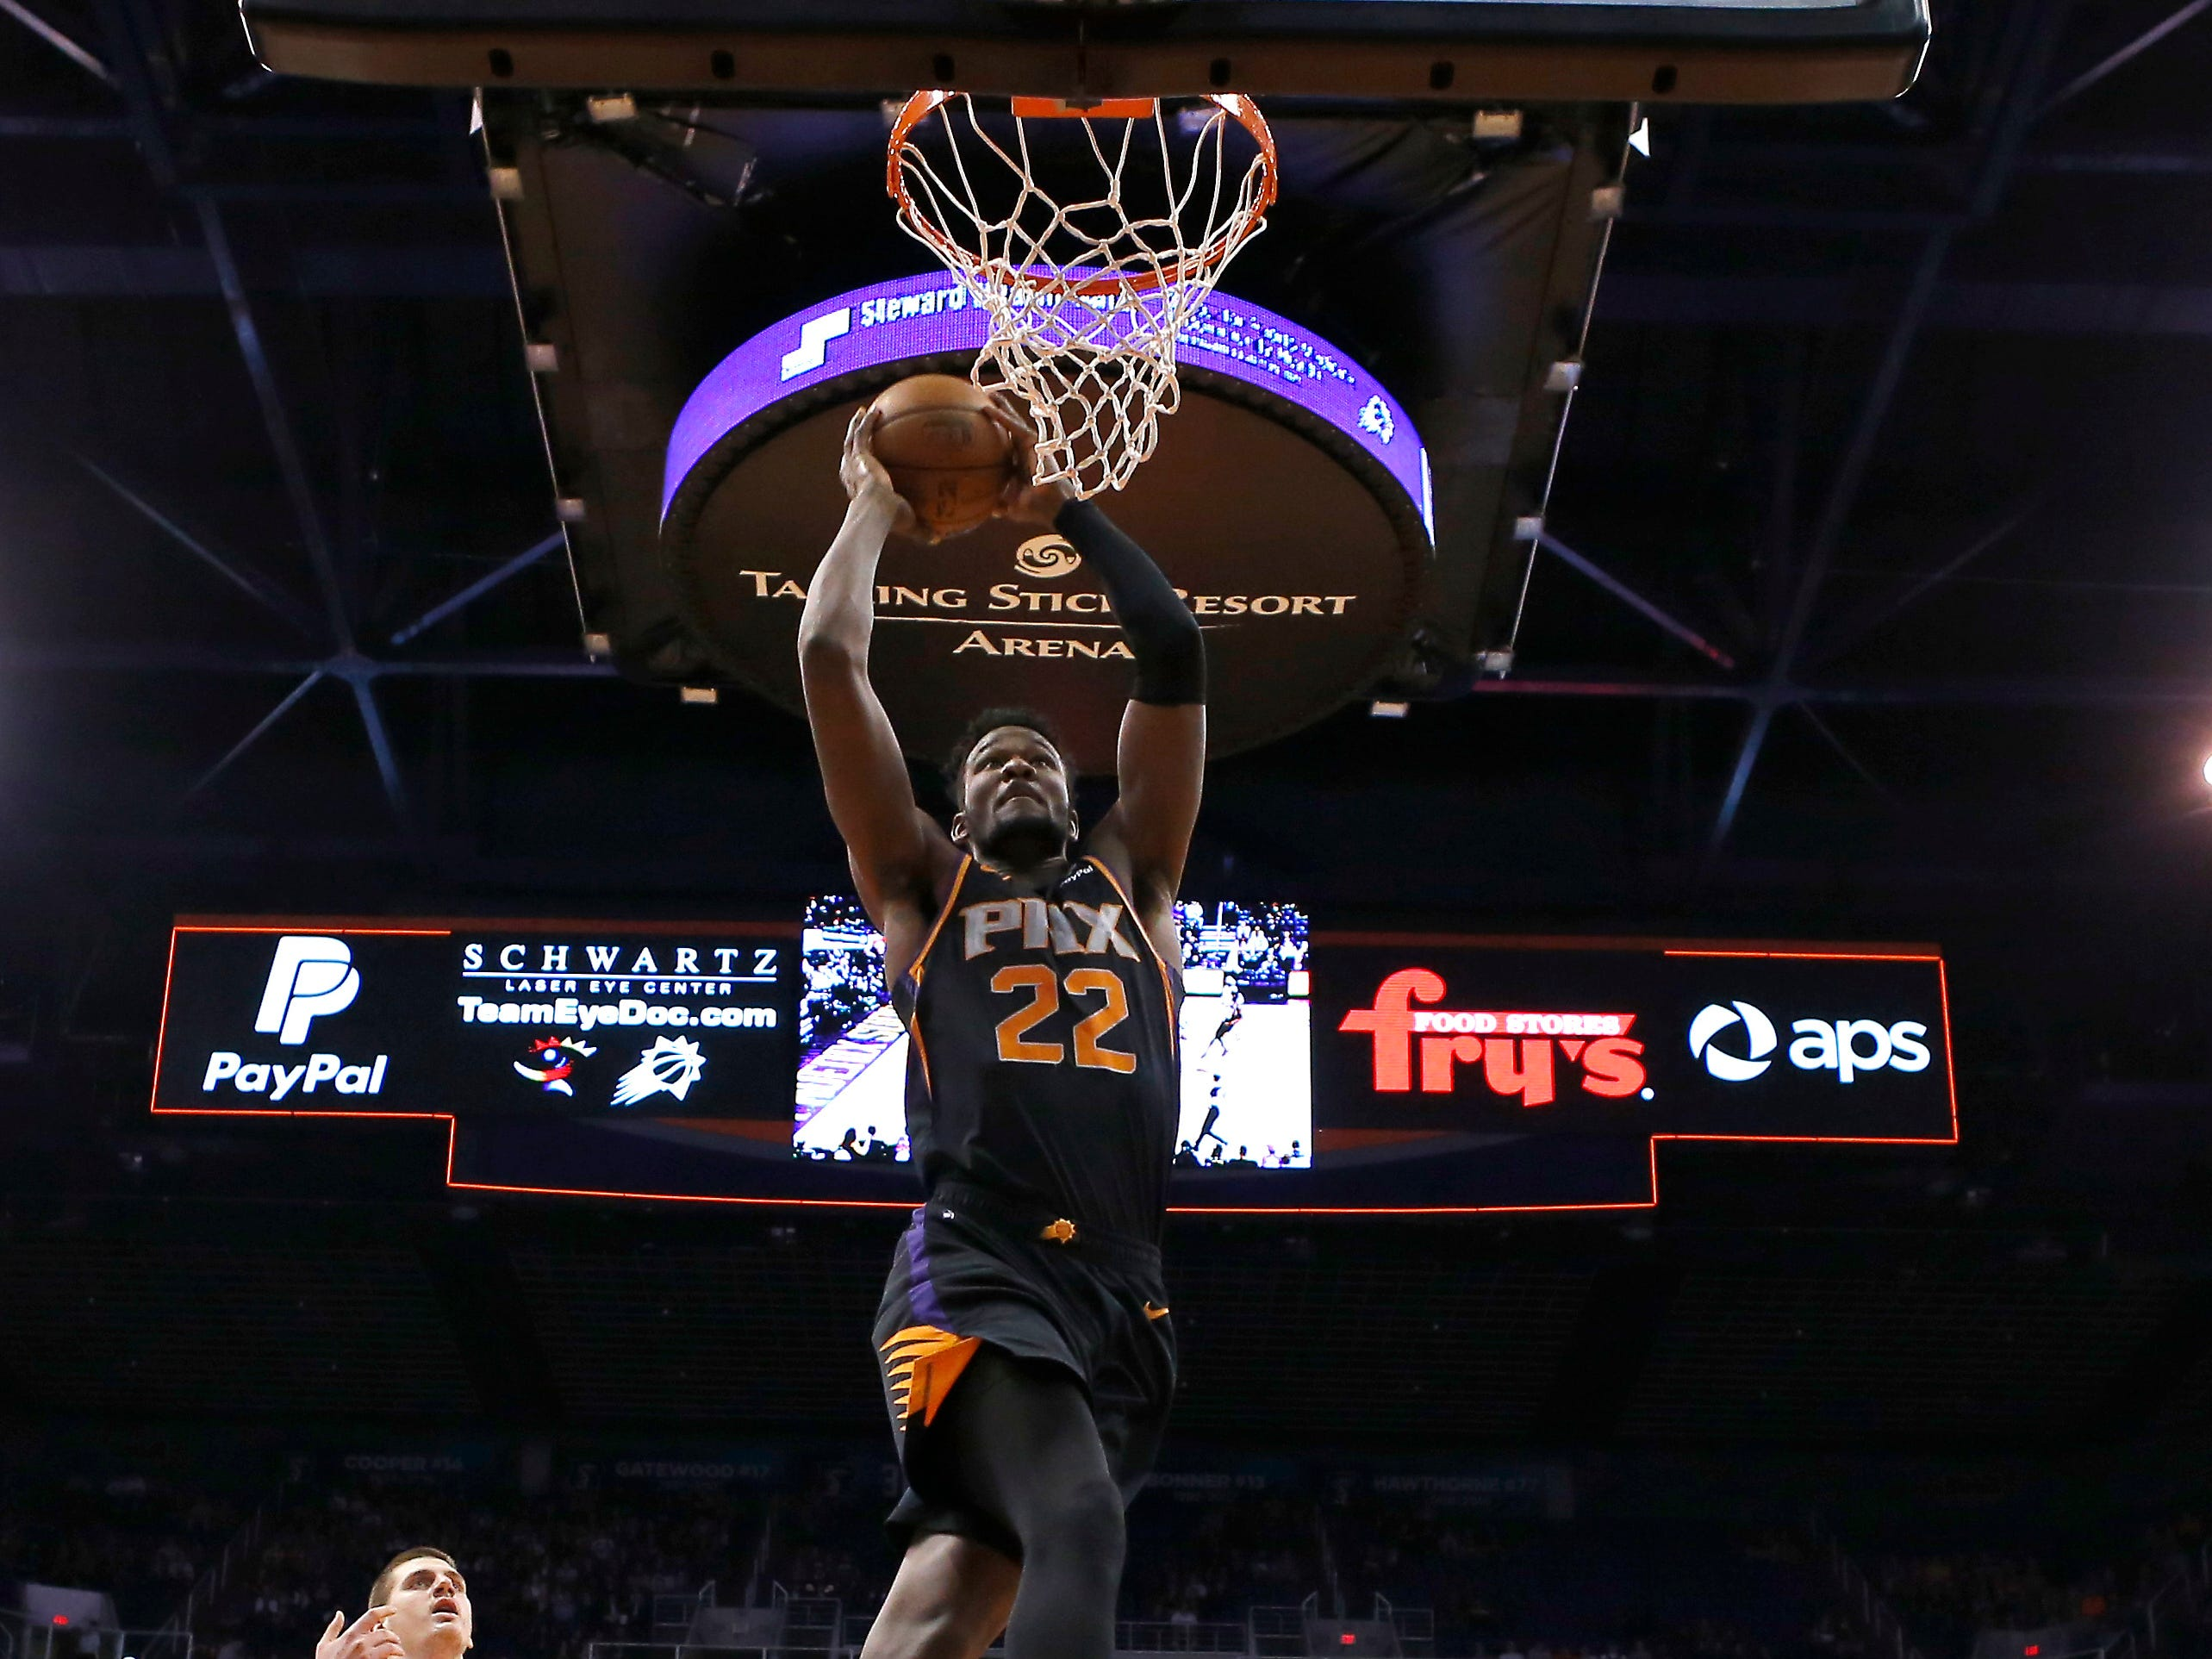 Phoenix Suns center Deandre Ayton (22) dunks against the Denver Nuggets in the second half, Saturday, Jan. 12, 2019, in Phoenix.  (AP Photo/Rick Scuteri)